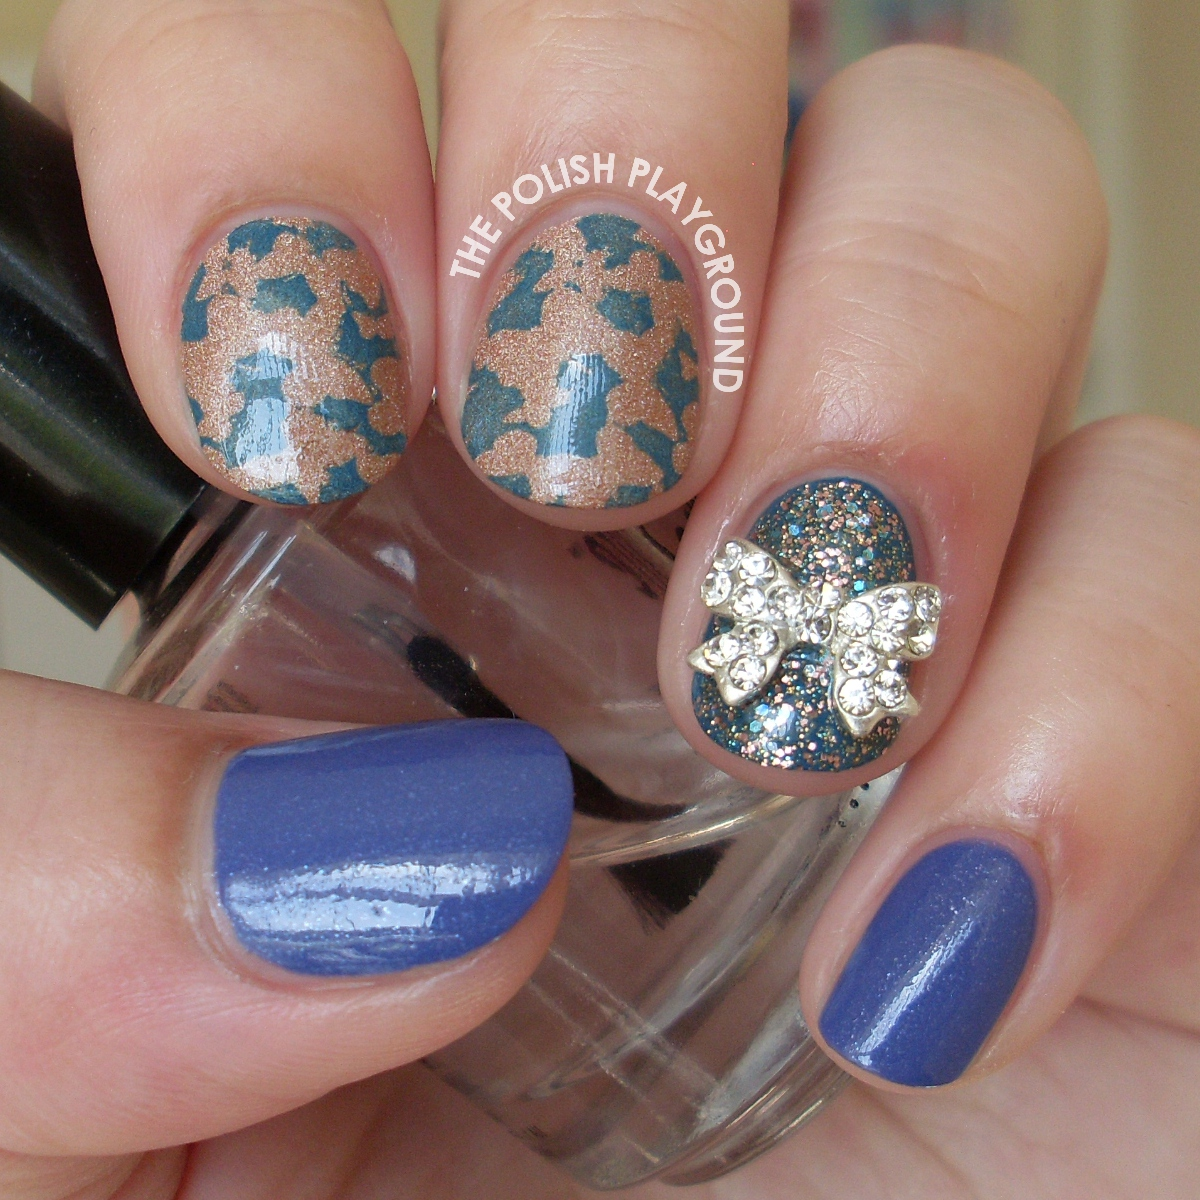 Butterfly Effect with Bow Stud Stamping Nail Art